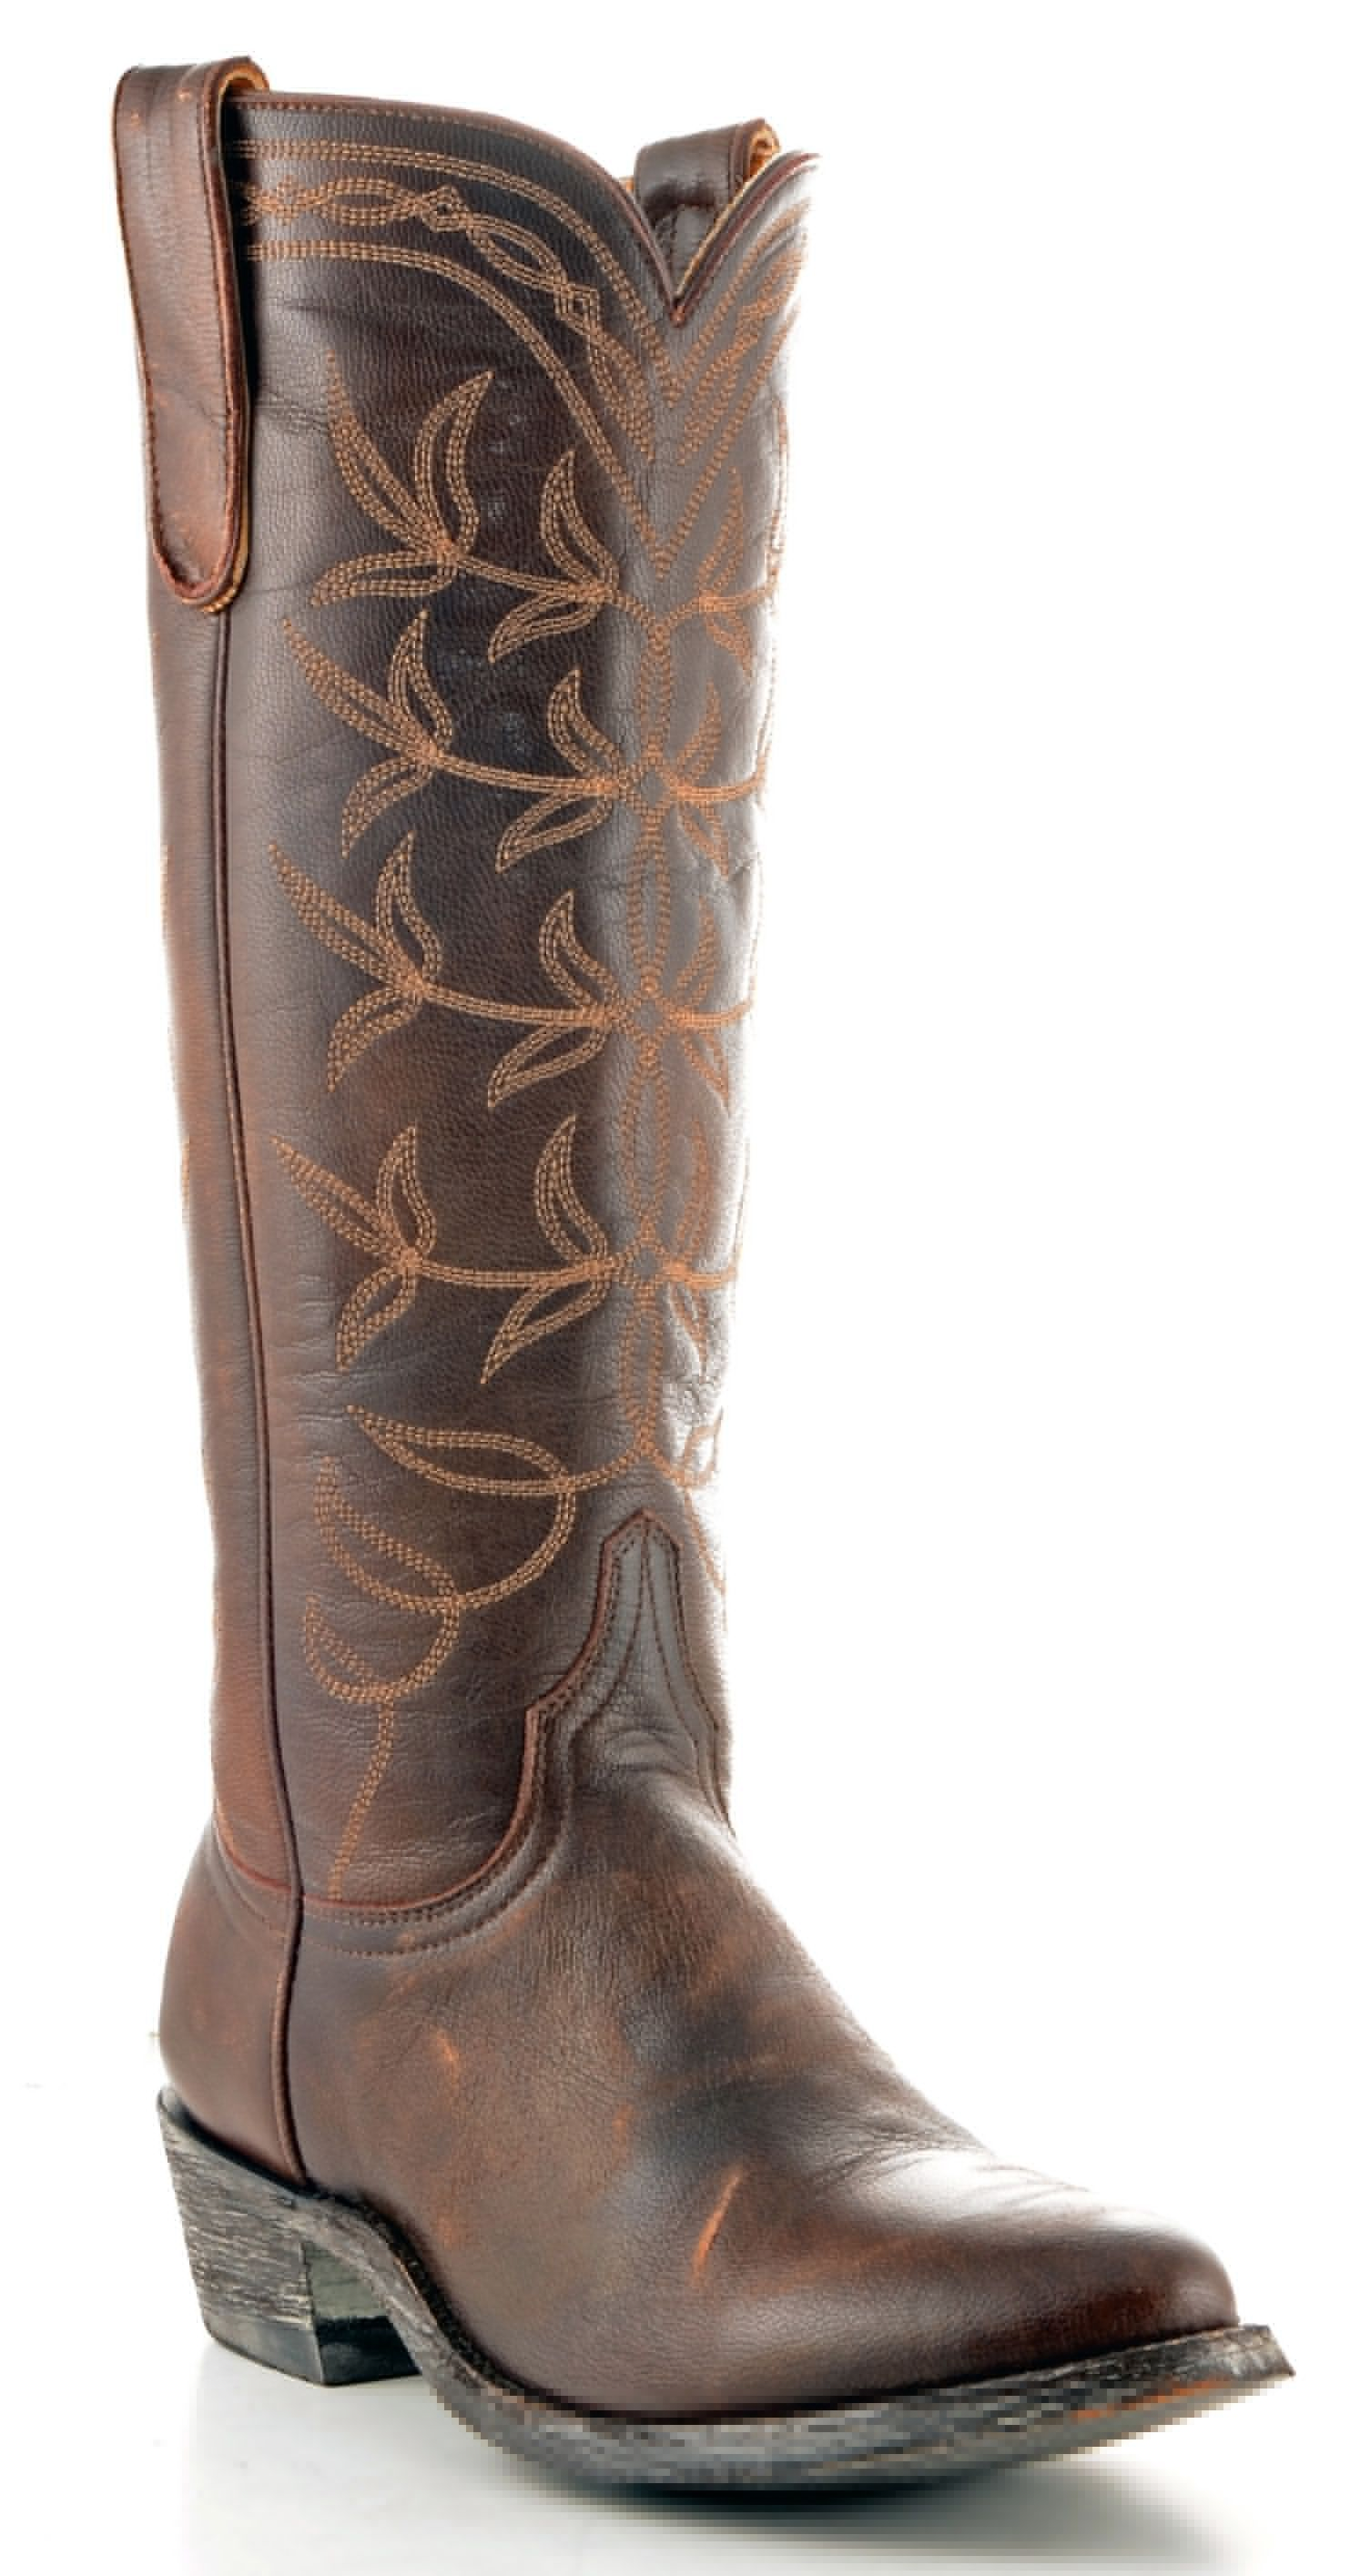 2a3a1c5b152 Womens Old Gringo Polo Brush Off Boots Brown Style L194-15 | Old ...